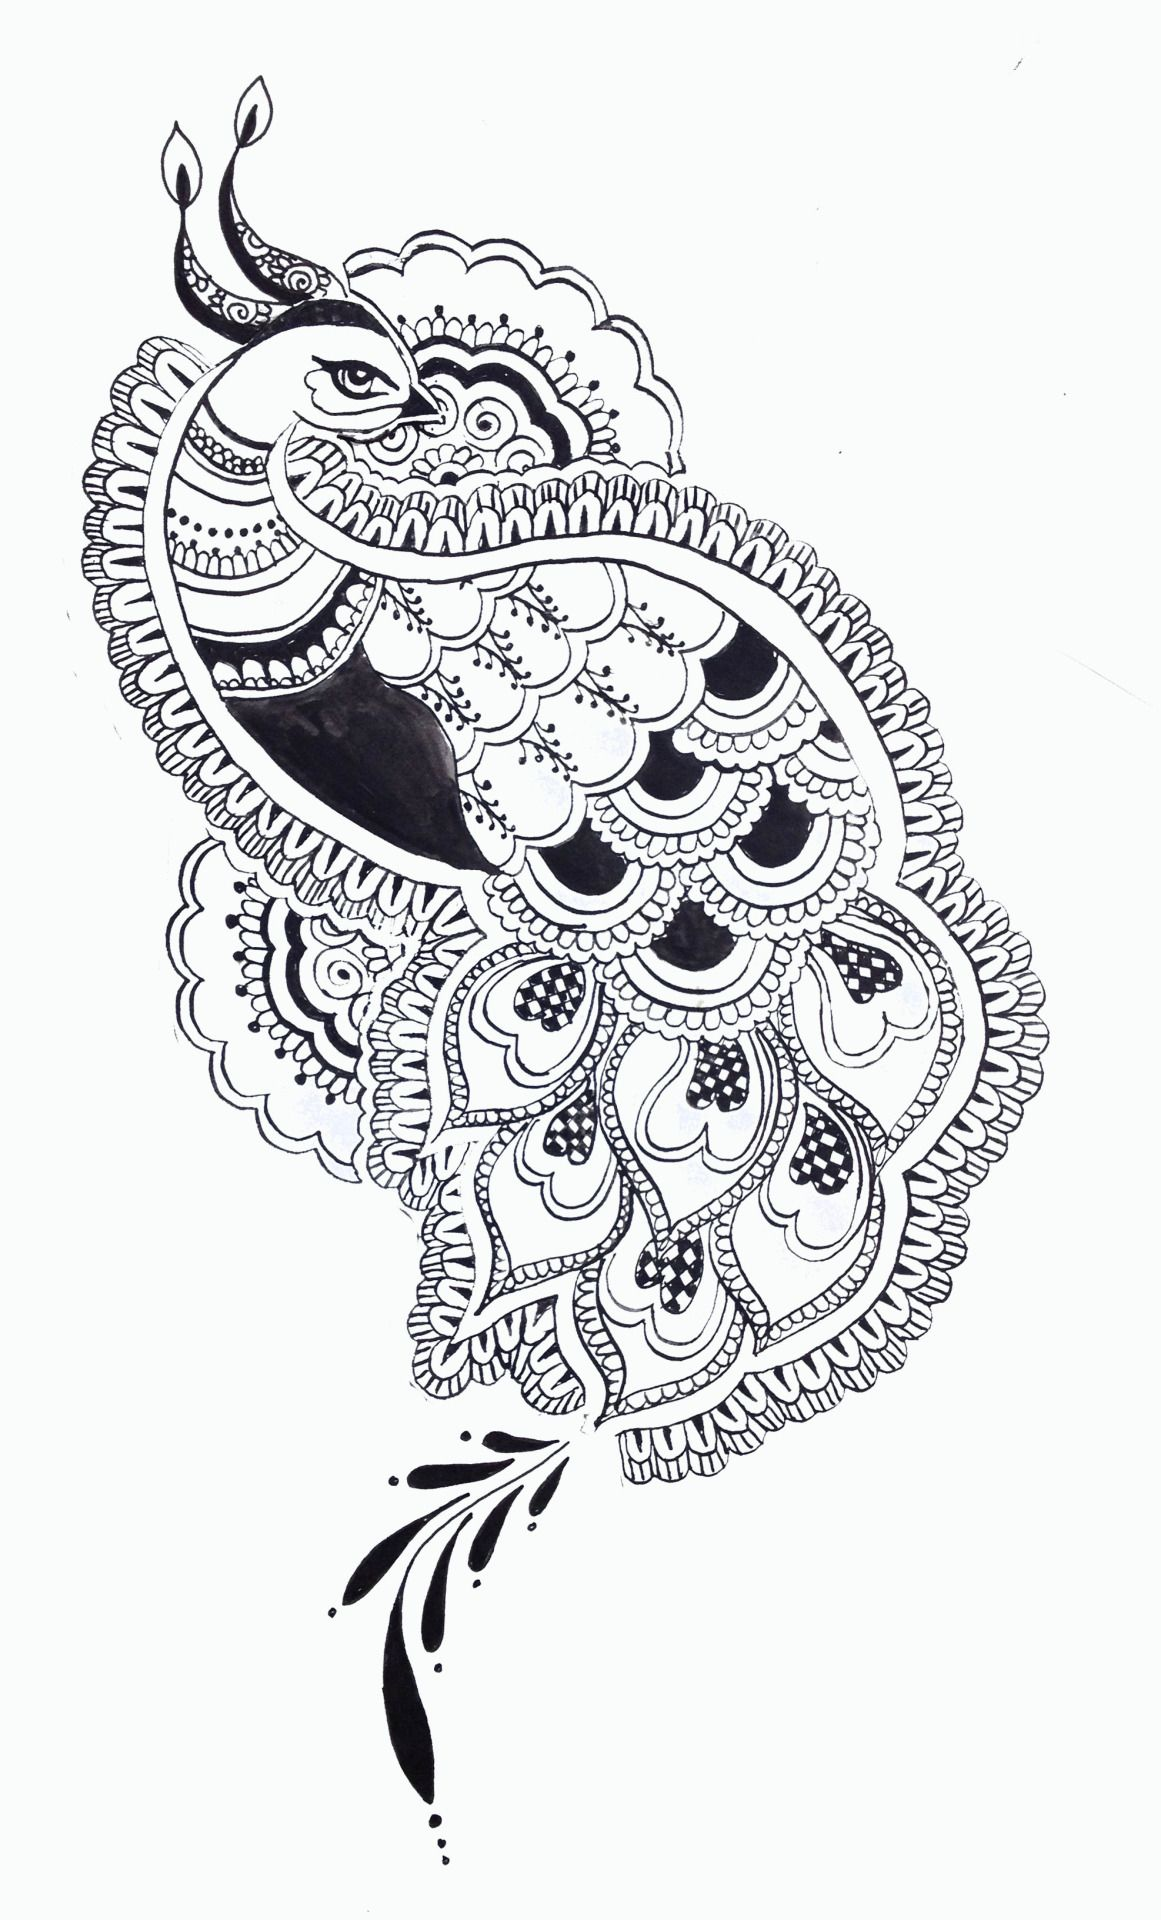 peacock drawing tattoo - Google Search | Peacocks ...  |Peacock Tattoo Black And White